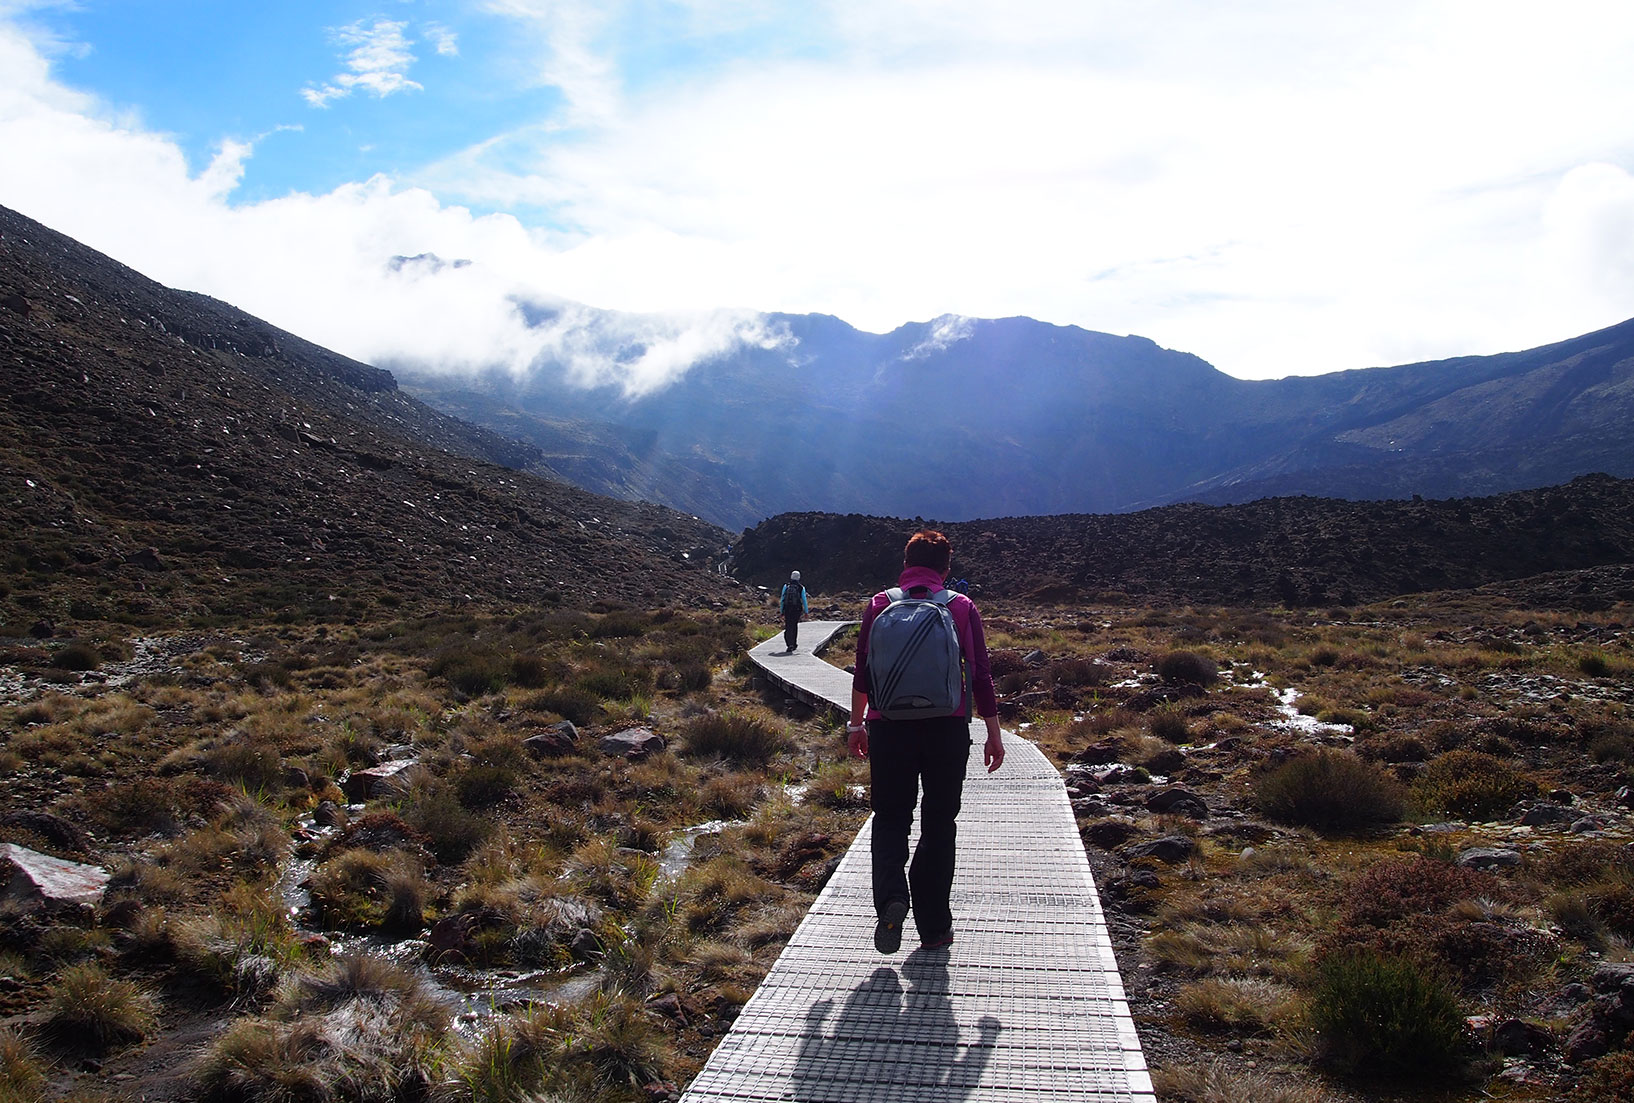 Take the Tongariro Crossing at your own speed. You can even eavesdrop on other people's conversations!